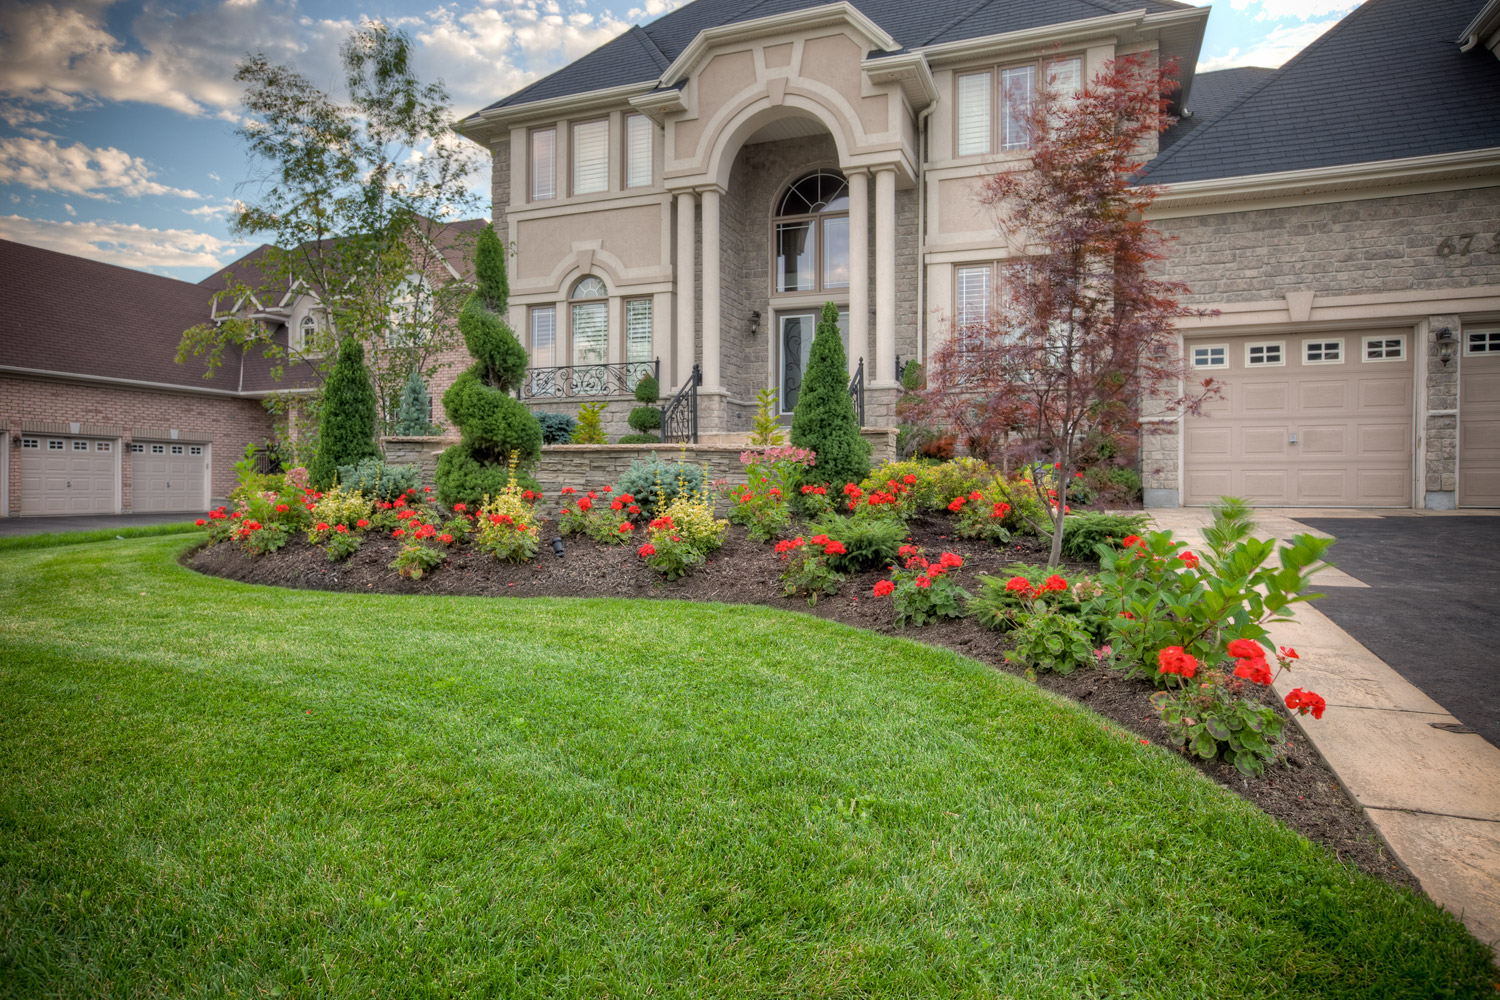 Some ideas of front yard landscaping for a small front for Garden lawn ideas